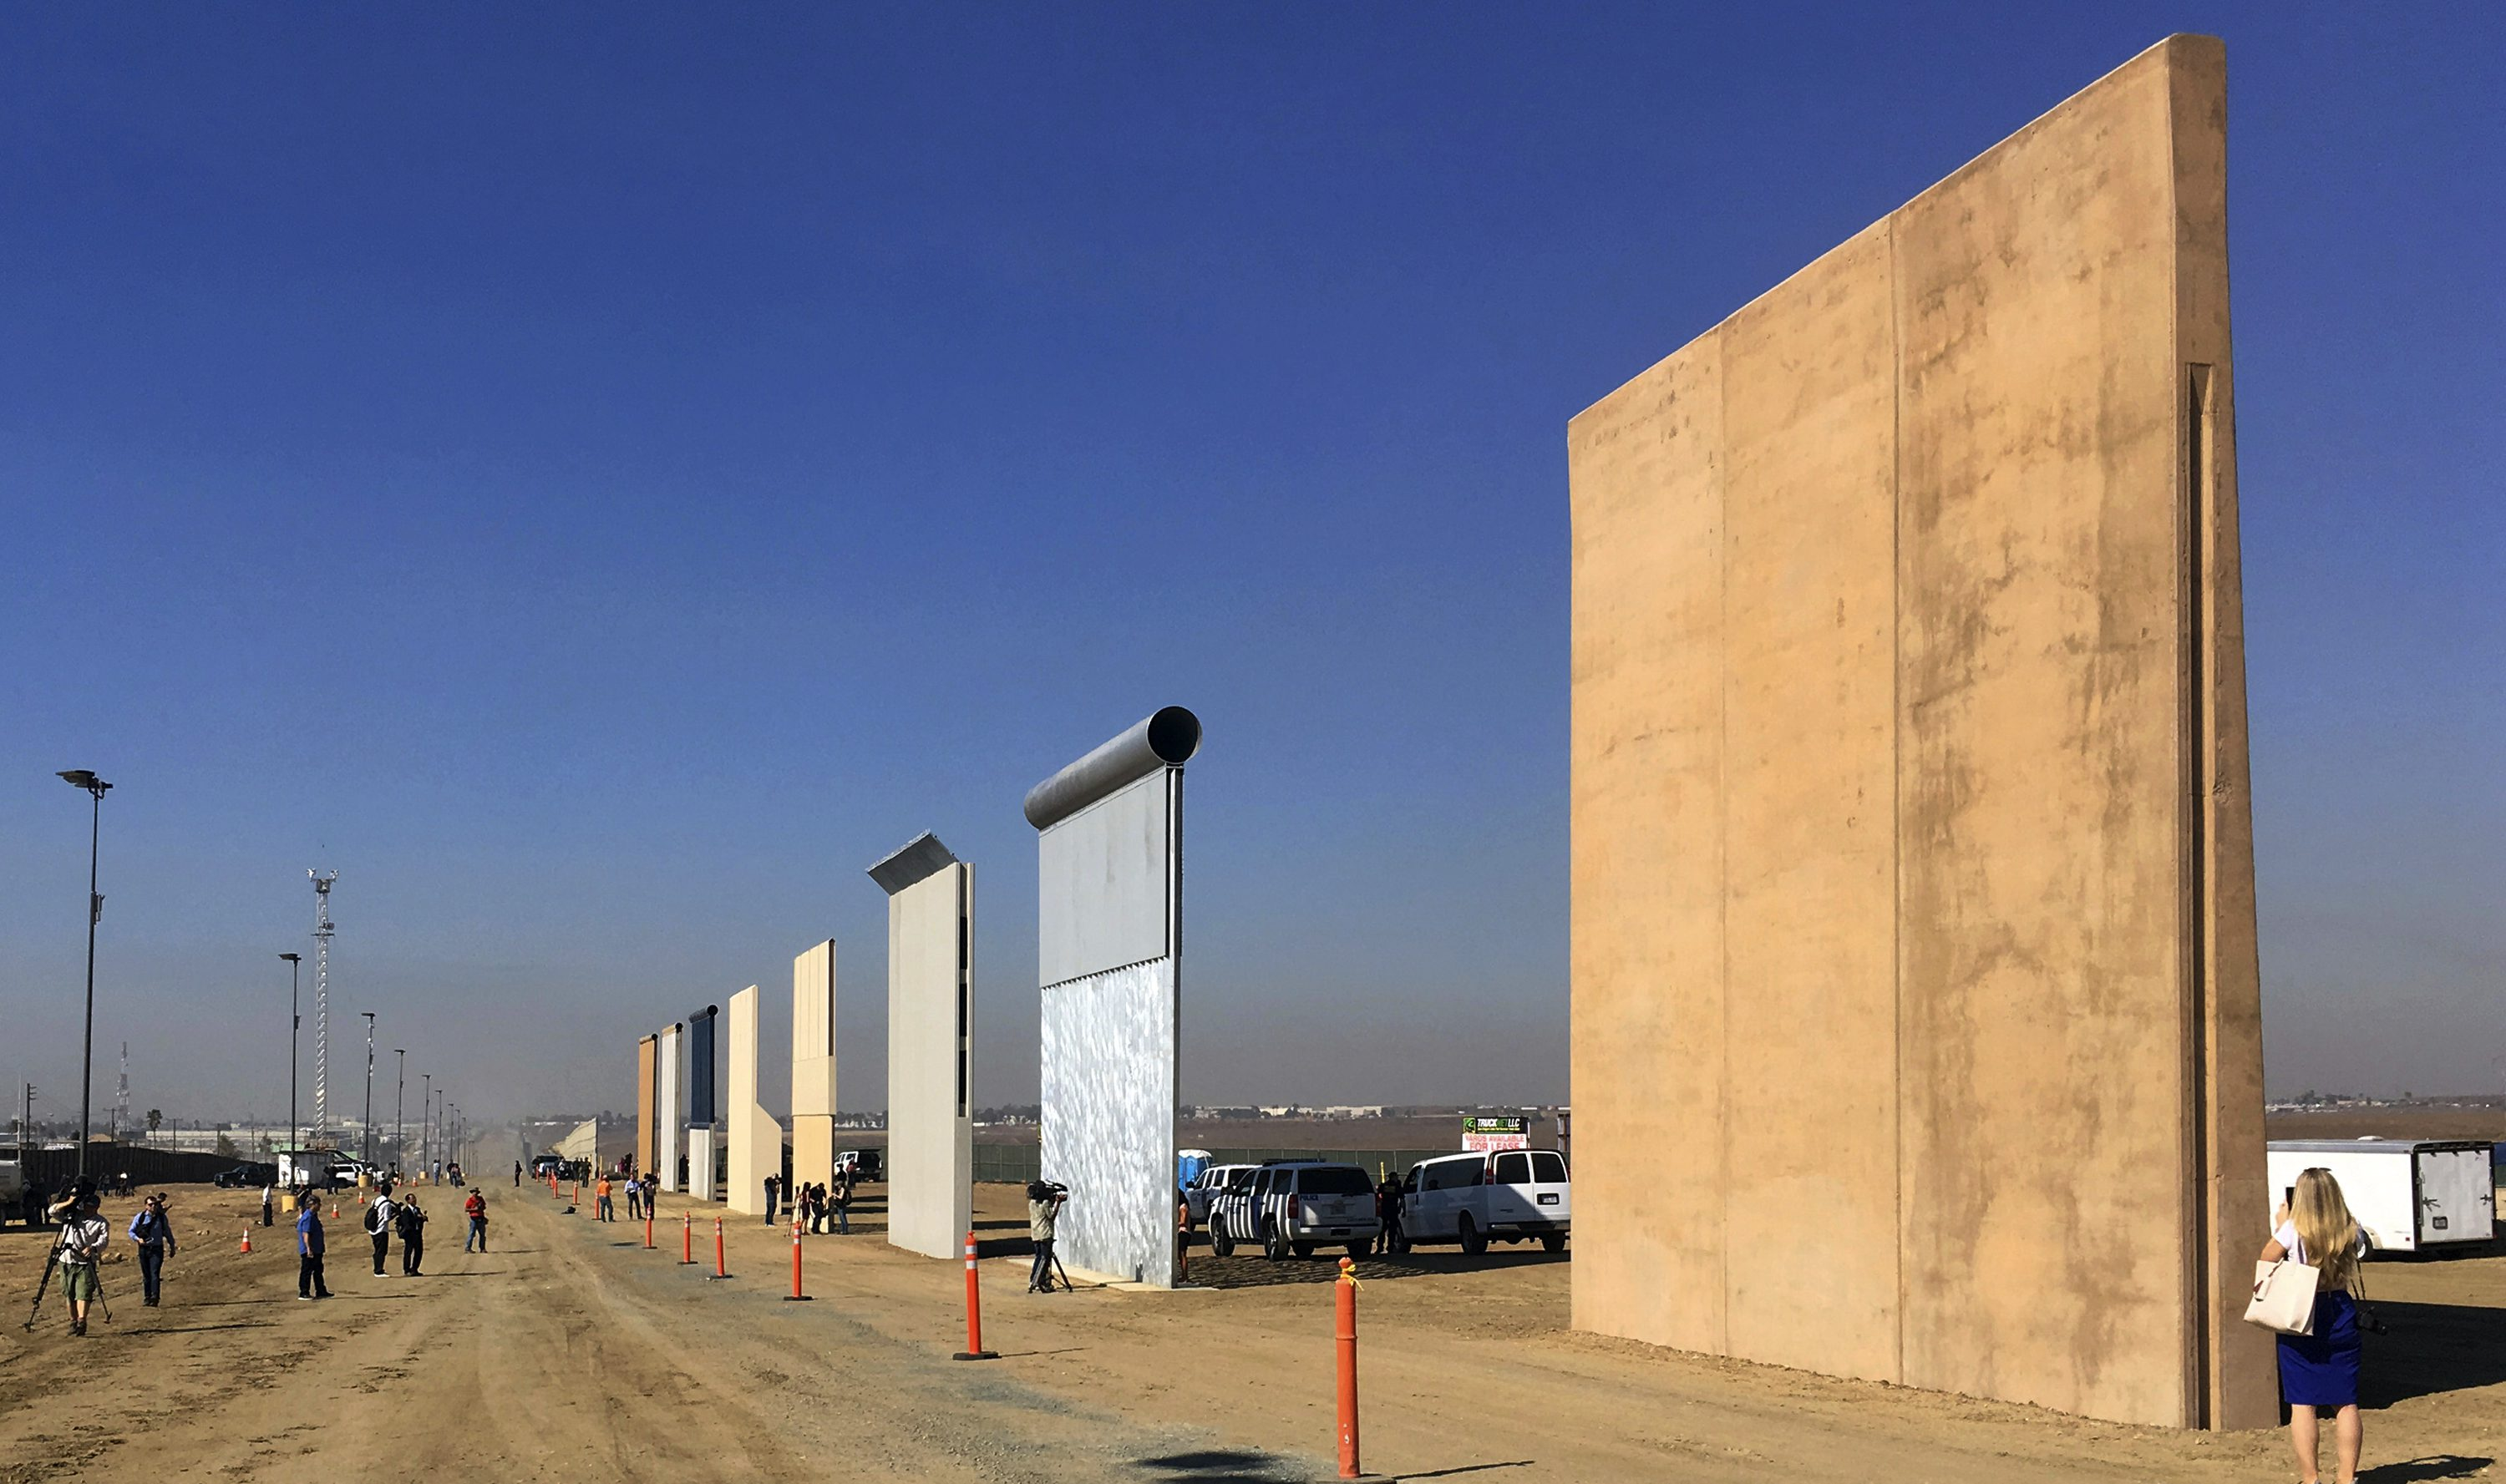 This Oct. 26, 2017 file photo shows prototypes of border walls in San Diego. The Trump administration has proposed spending $18 billion over 10 years to significantly extend the border wall with Mexico. The plan provides one of the most detailed blueprints of how the president hopes to carry out a signature campaign pledge.